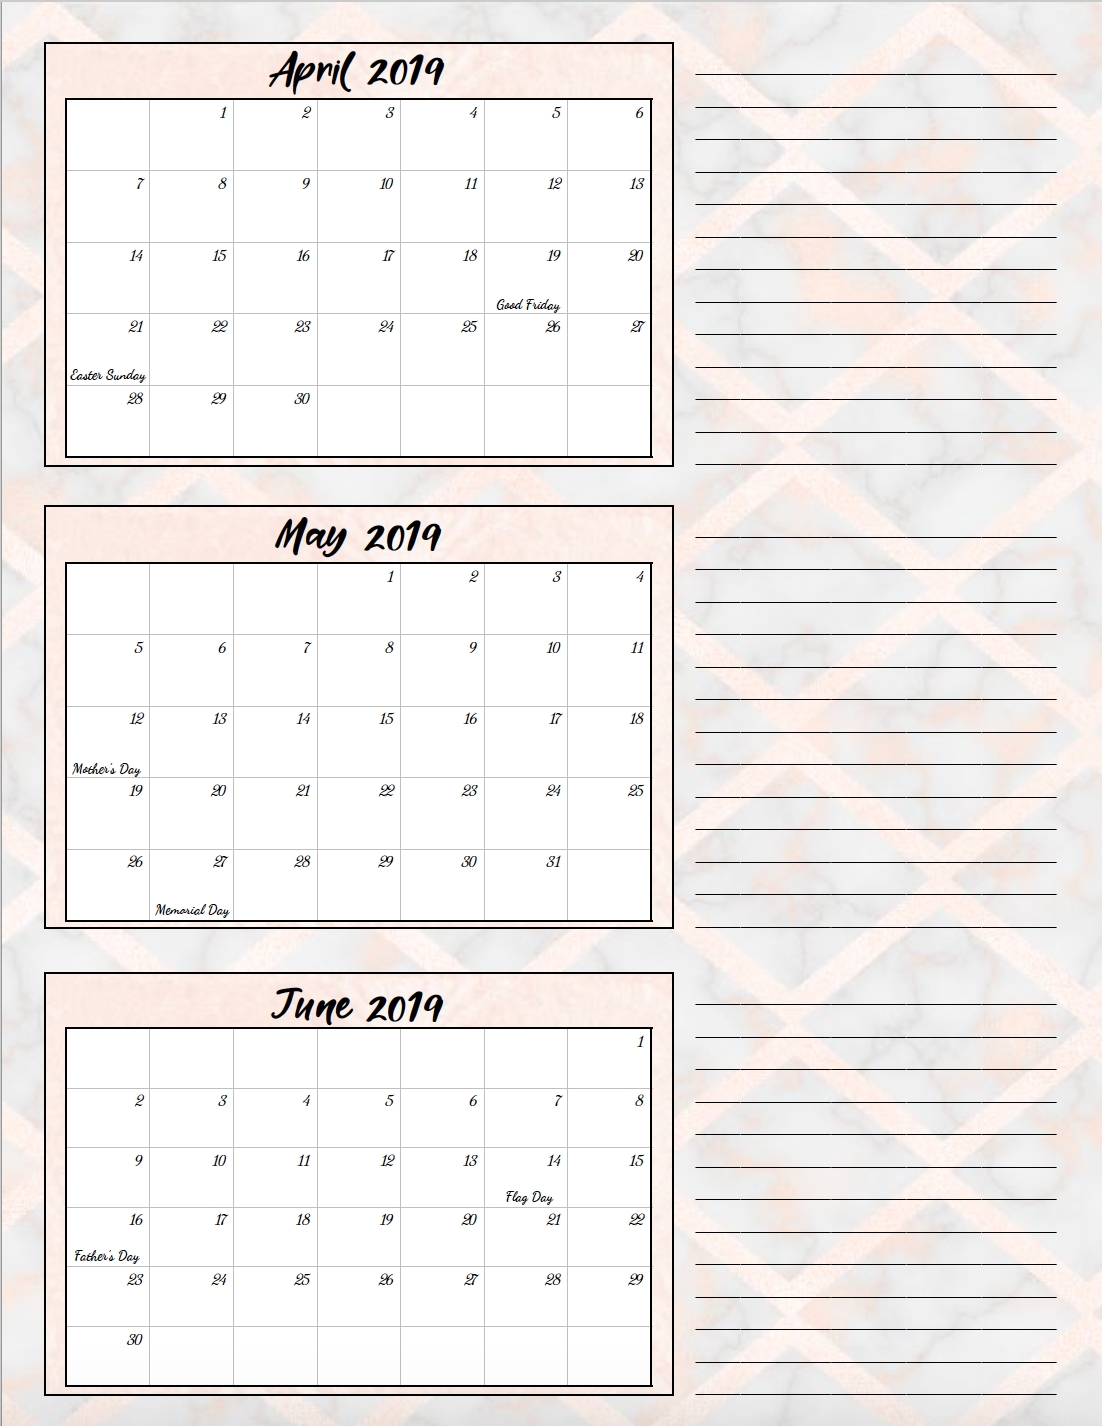 Printable Calendar 4Th Quarter 2019 | Igotlockedout